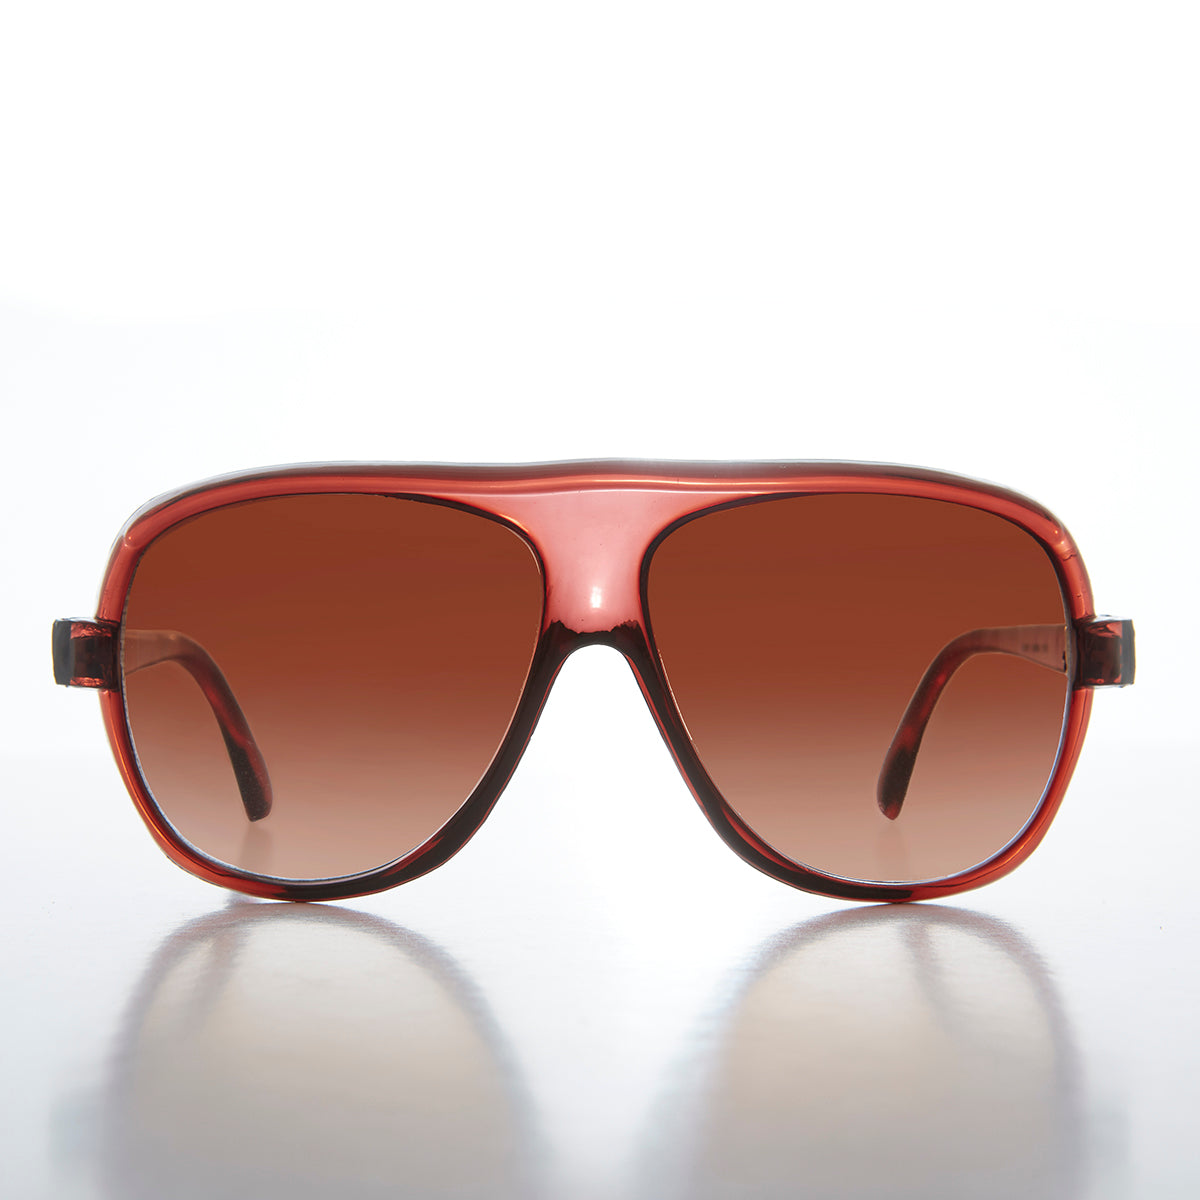 1980s square true vintage aviator with gradient lens